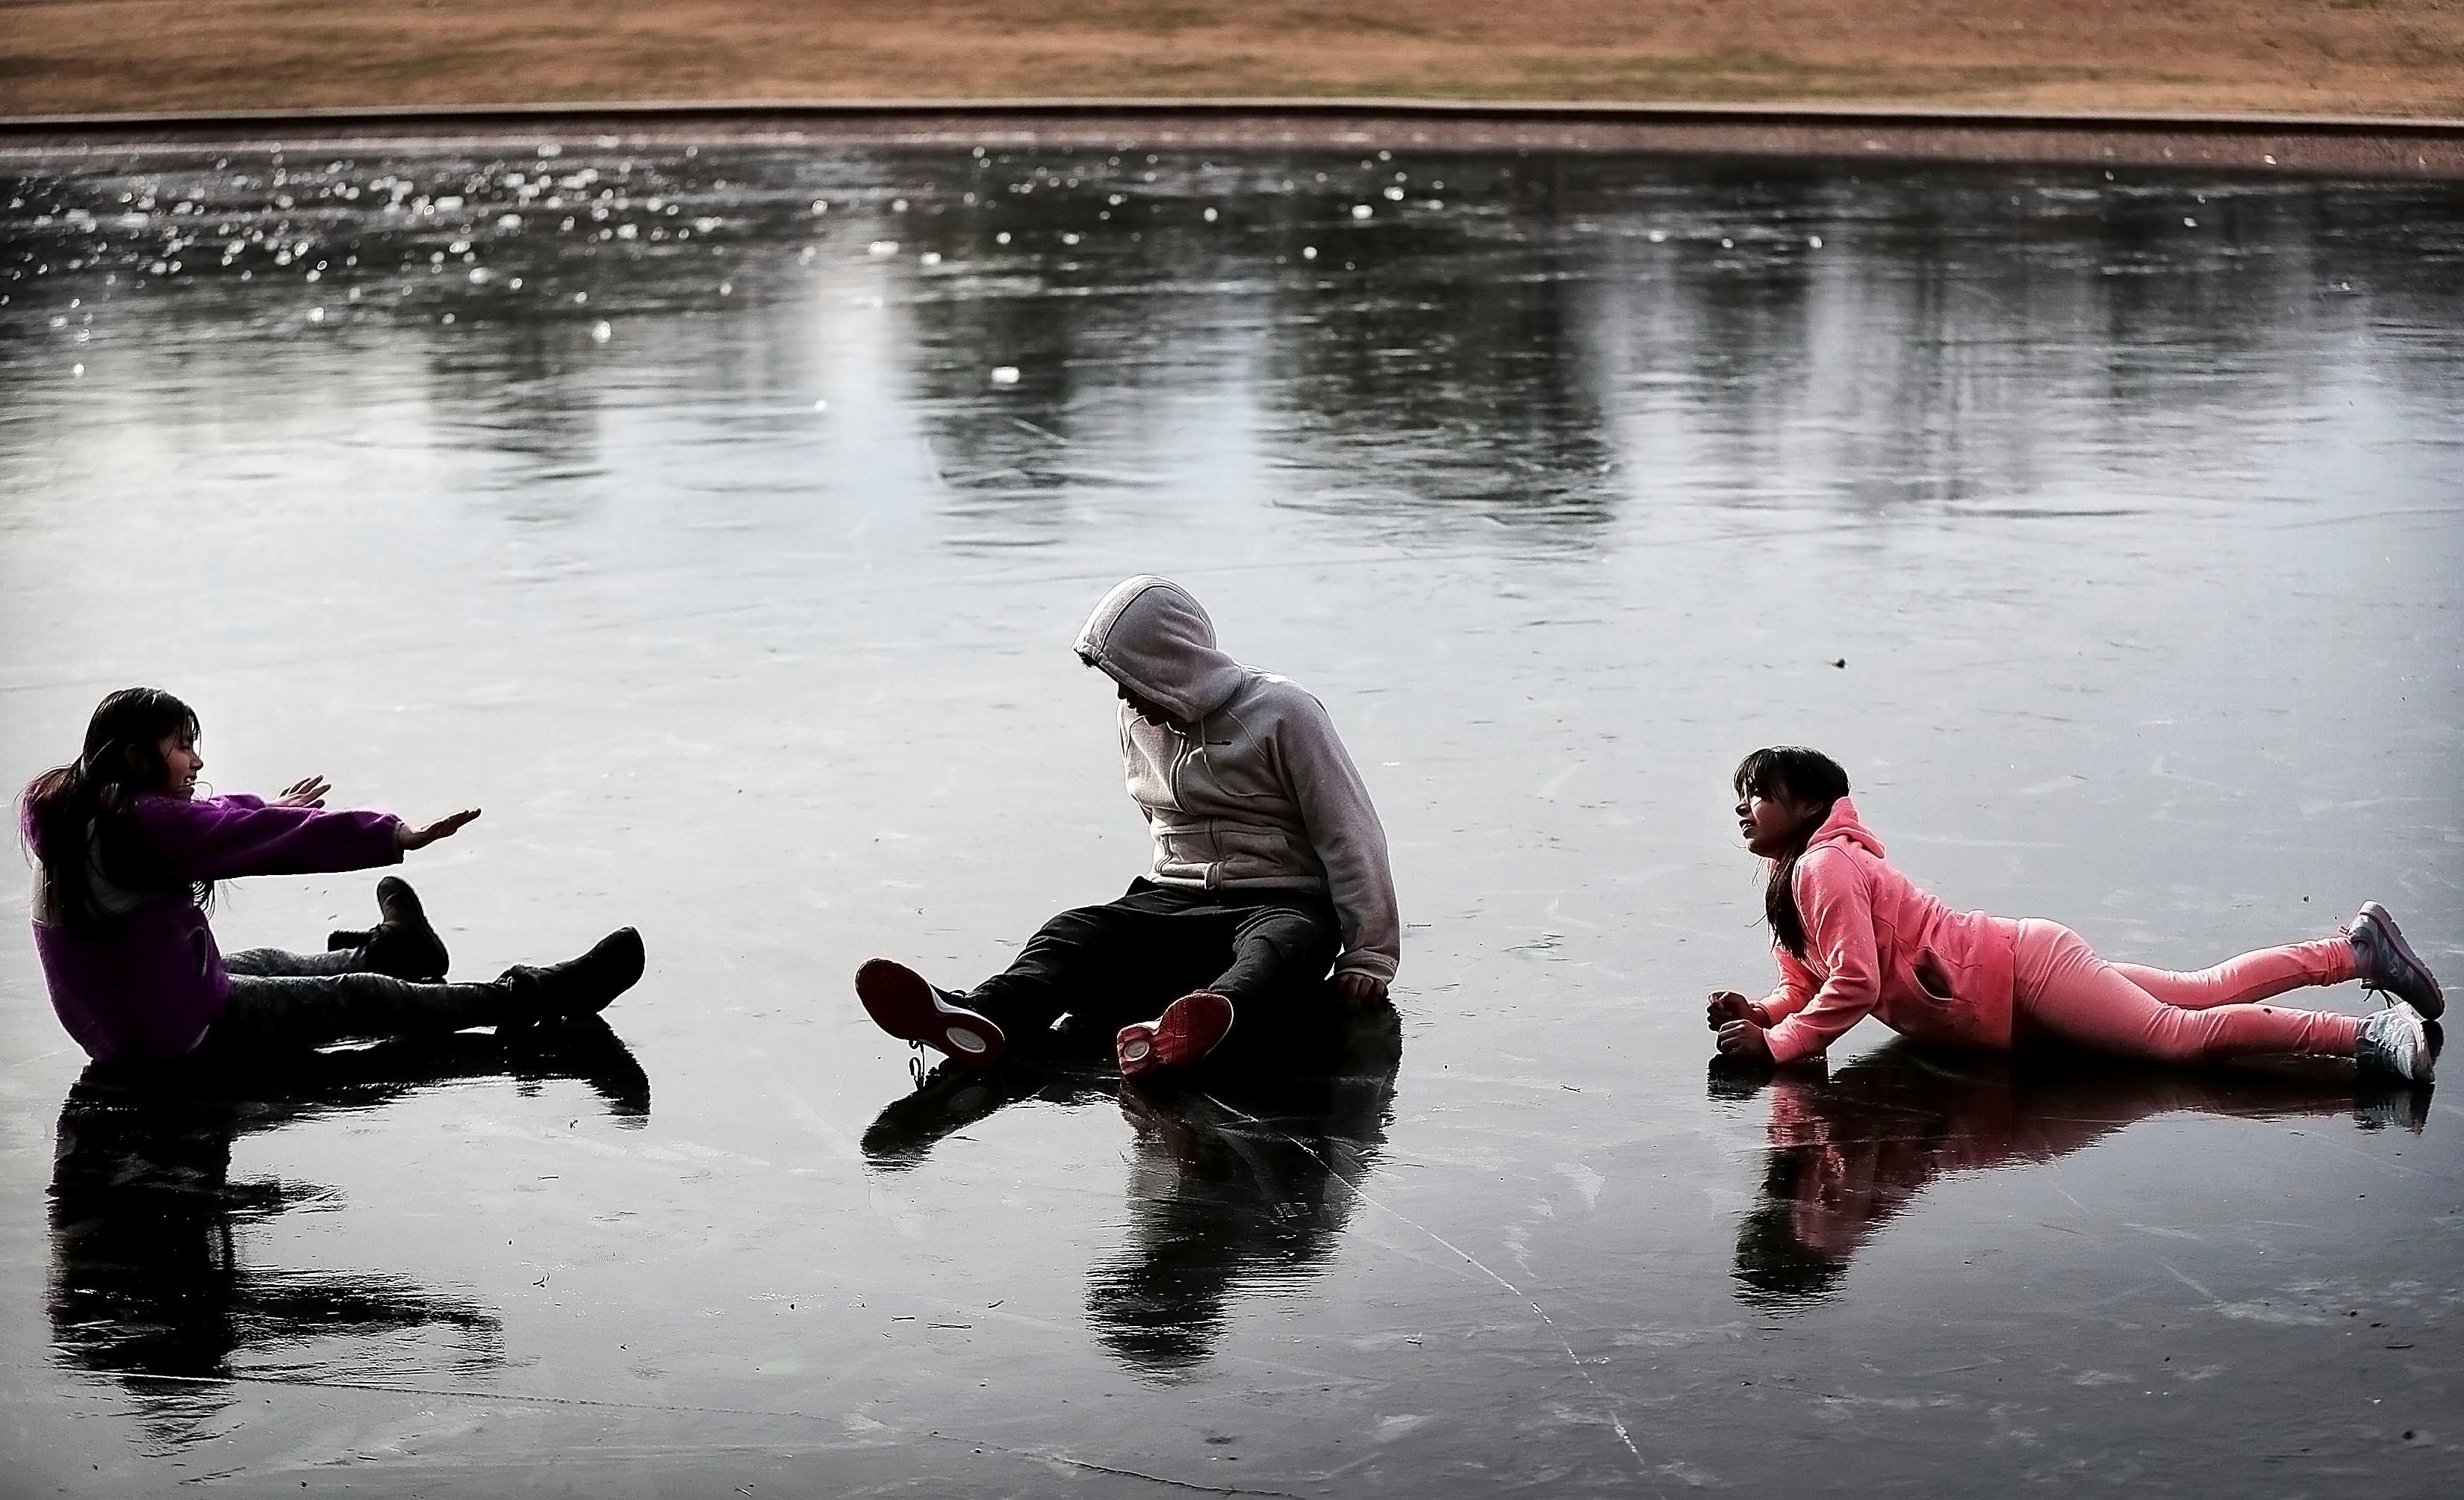 Sherlin Galicia, left, Alexander Galicia, center, and Heidi Galicia play on the iced over pond at Overton Park while walking the dog, Tuesday afternoon, Jan. 2, 2018, in Memphis, Tenn. The isce has grown a couple inches thick on the pond after several nights of sub freezing temperatures, which are expected to continue through the week. (Jim Weber/The Commercial Appeal via AP)